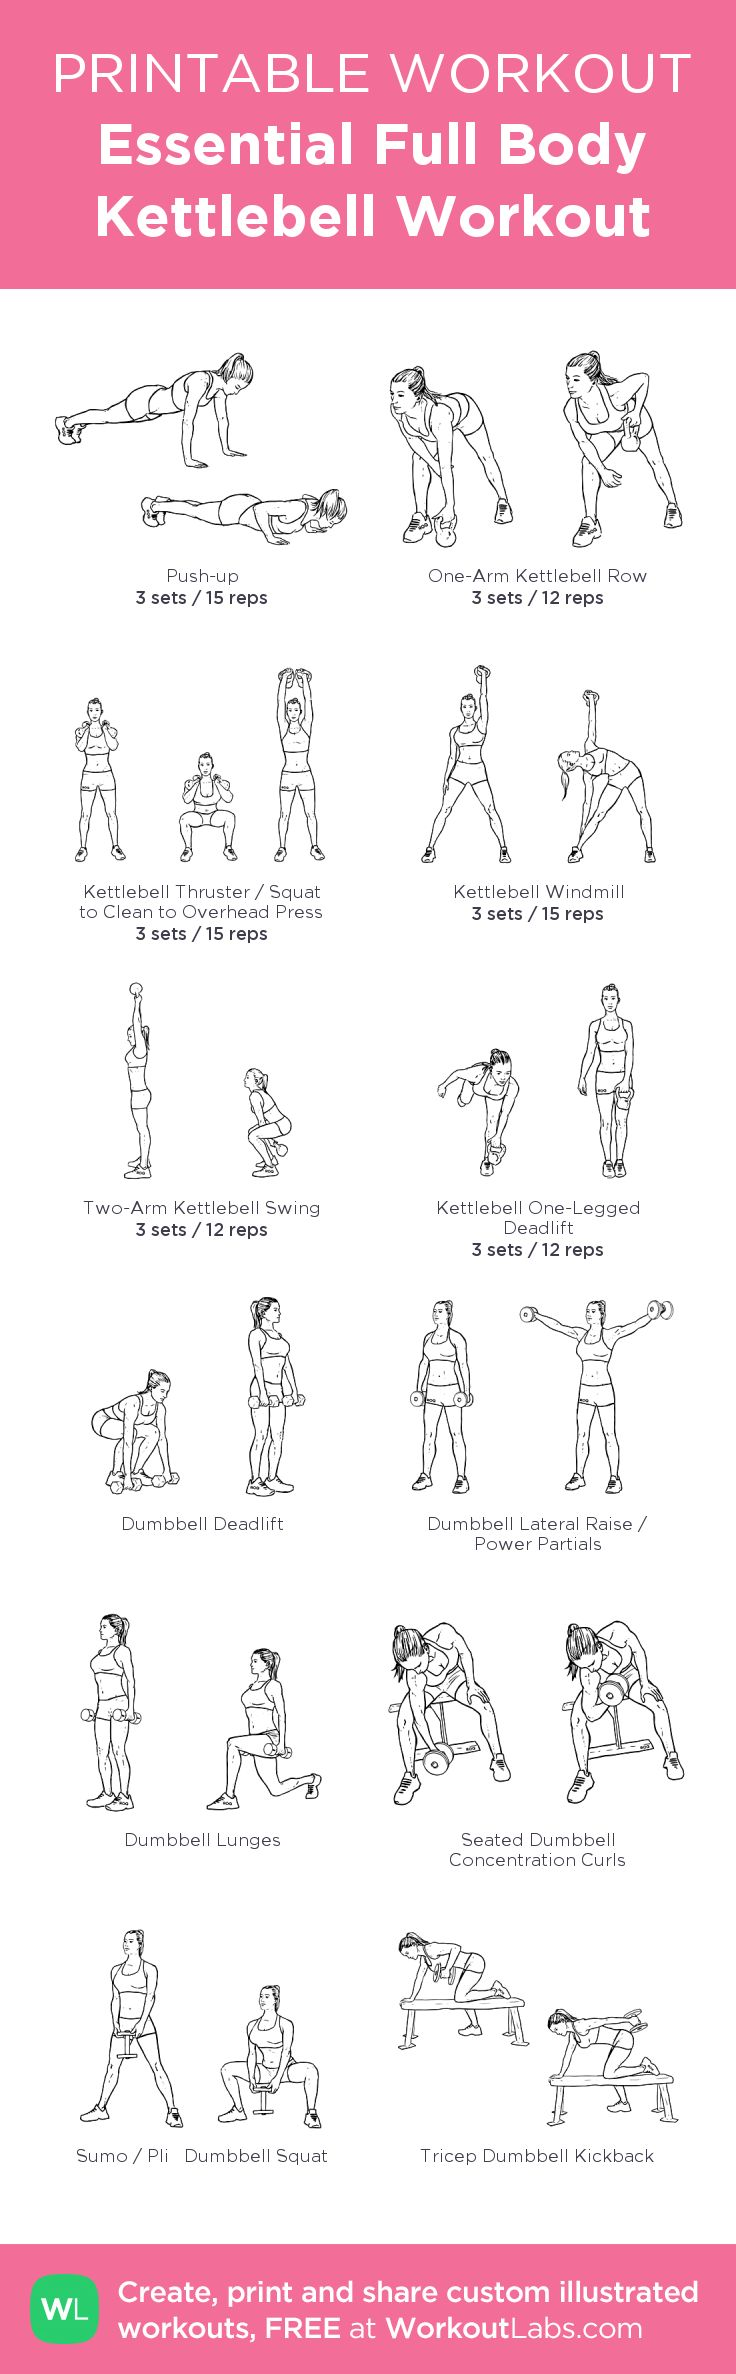 Essential Full Body Kettlebell Workout: my visual workout created at WorkoutLabs.com • Click through to customize and download as a FREE PDF! #customworkout